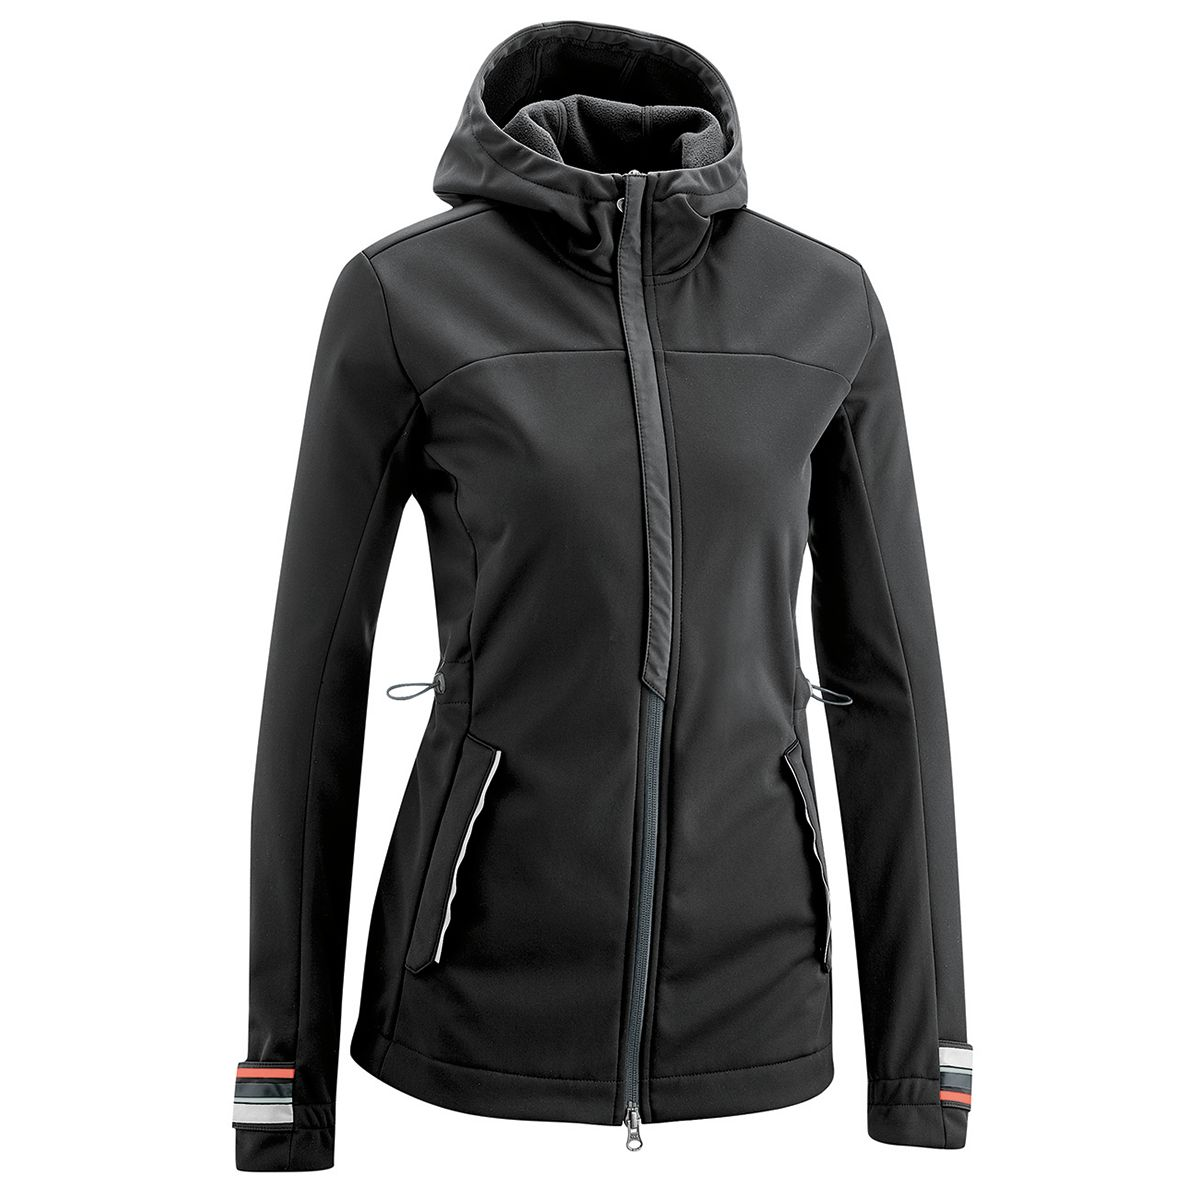 RAILA Damen Softshelljacke